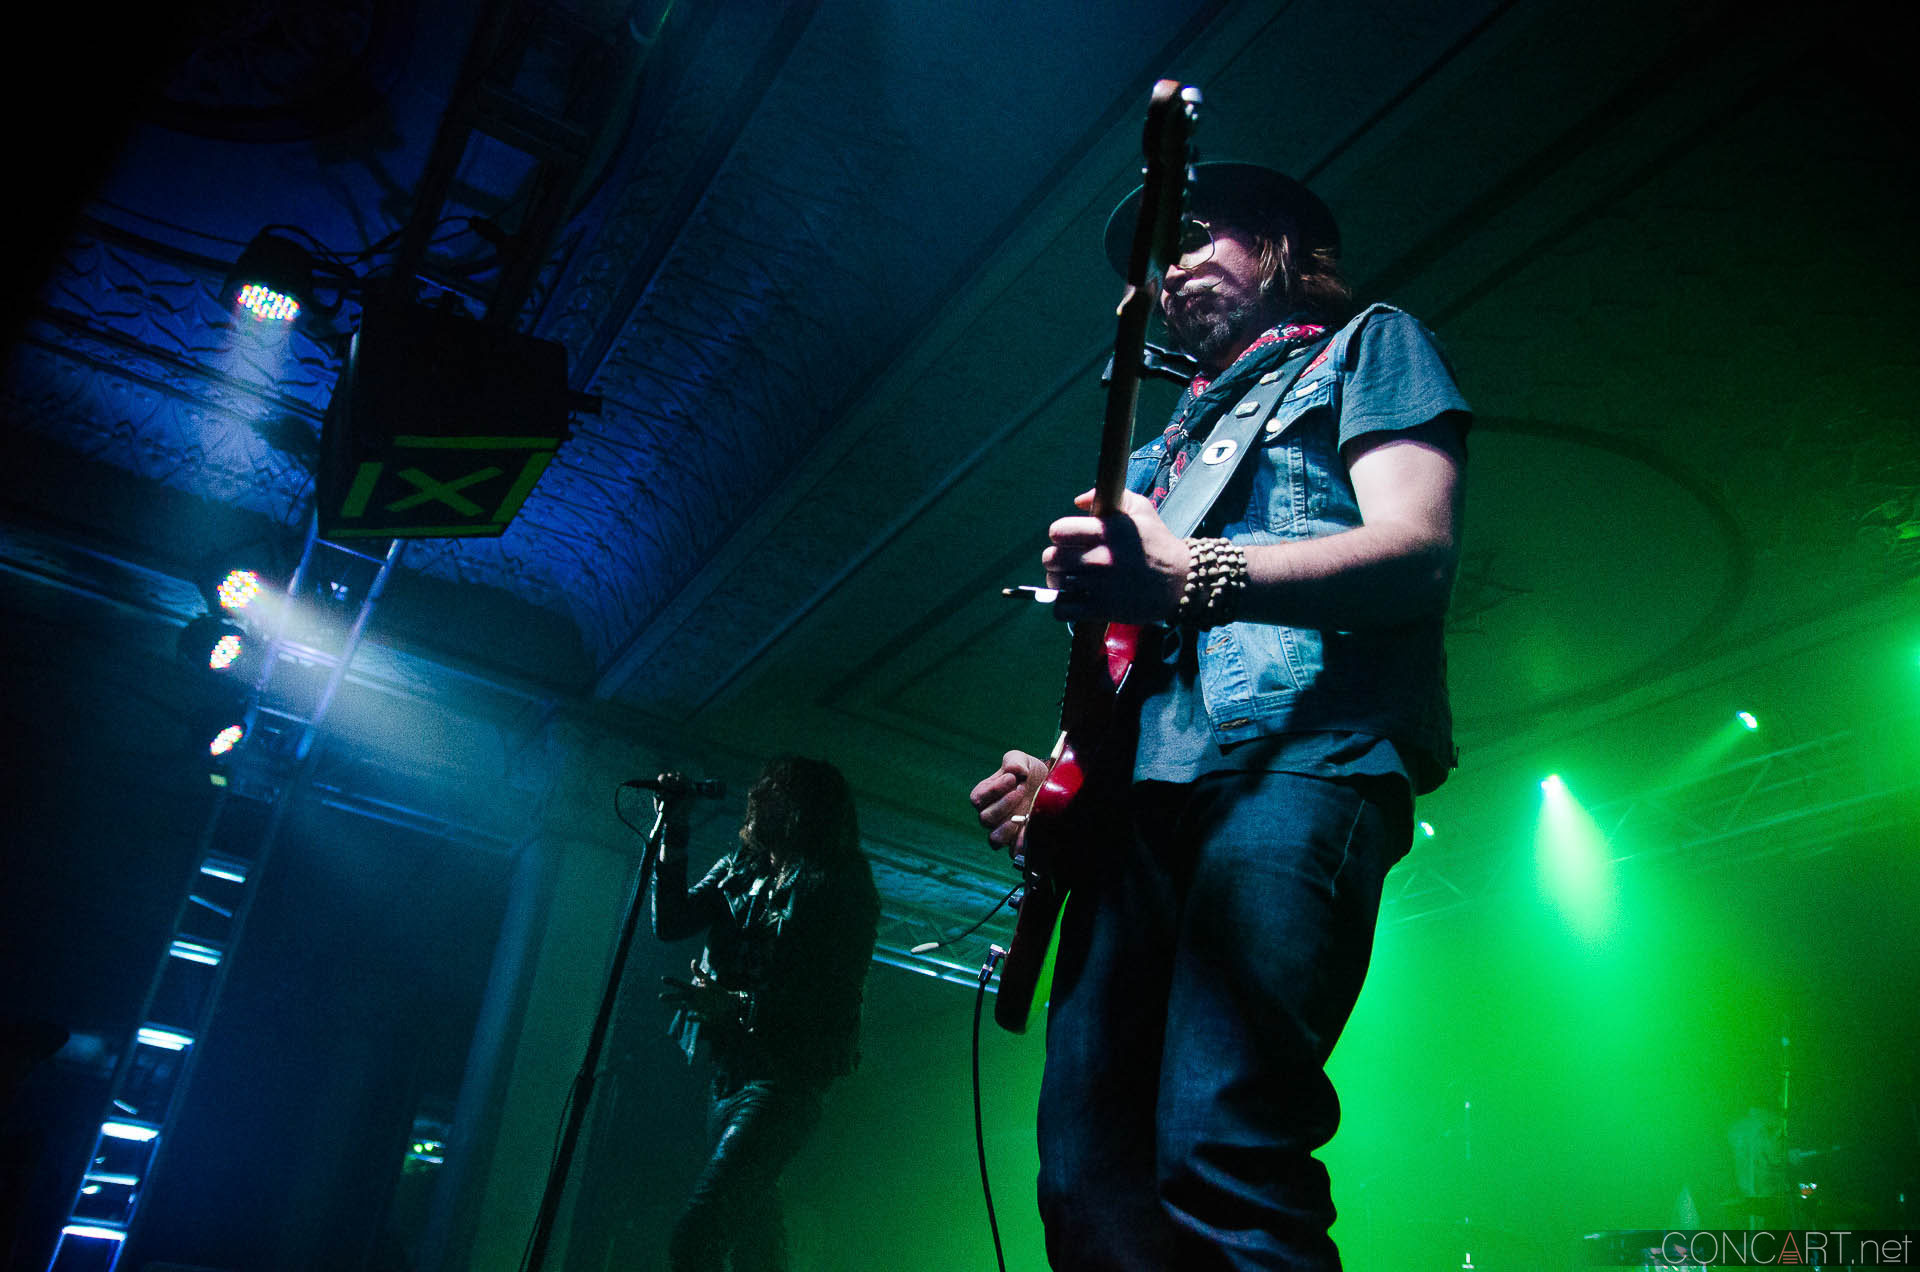 rival_sons_live_deluxe_indianapolis_2013-14